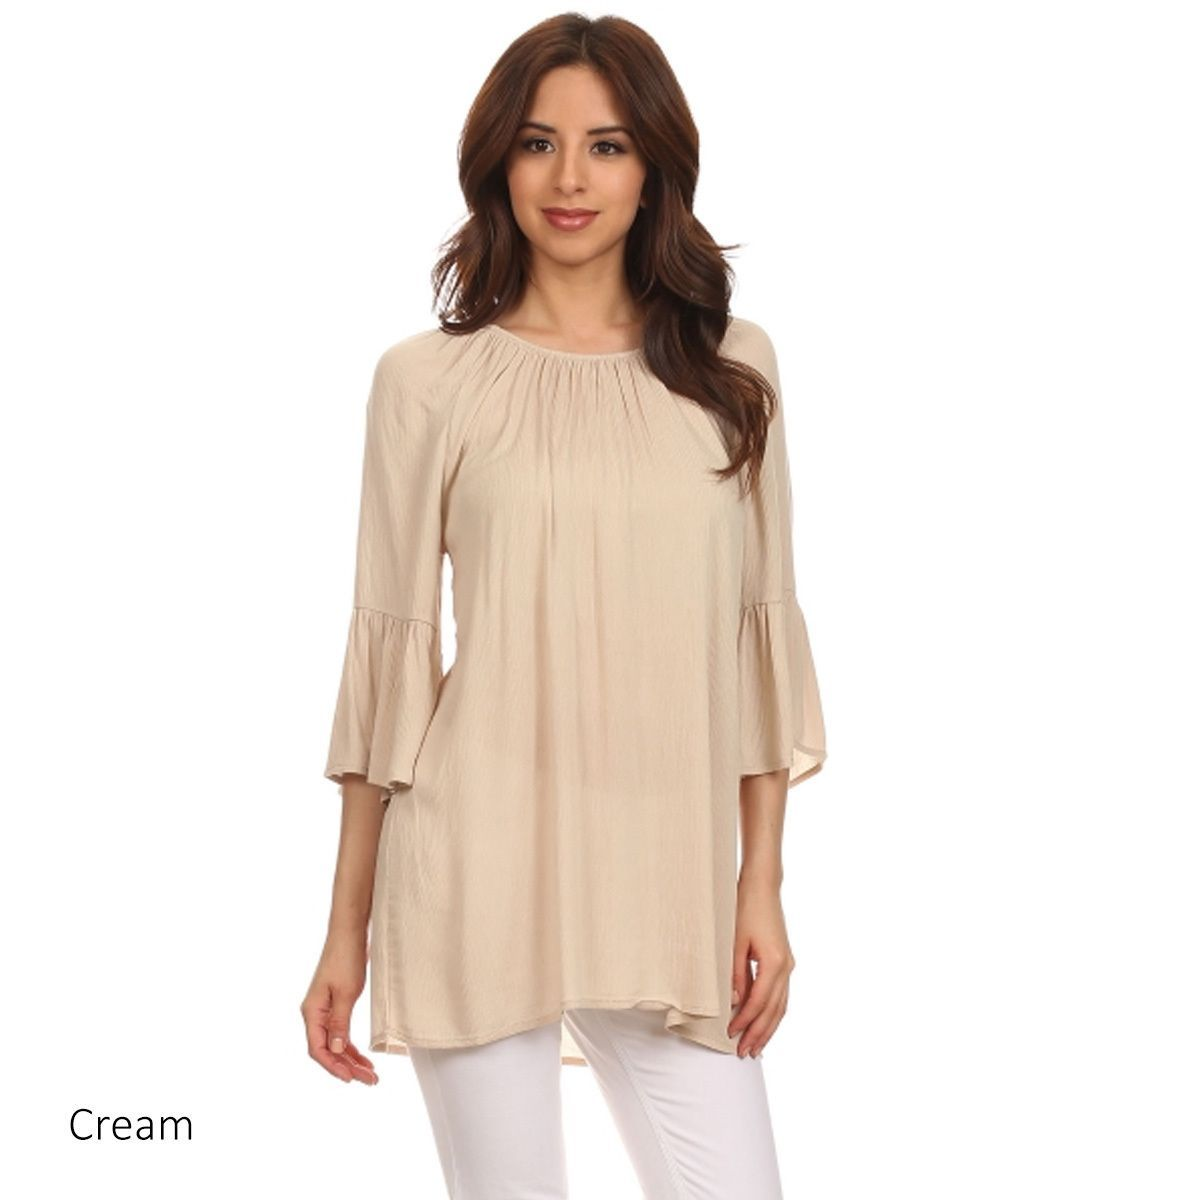 Women's Solid-colored 3/4-sleeve Blouse